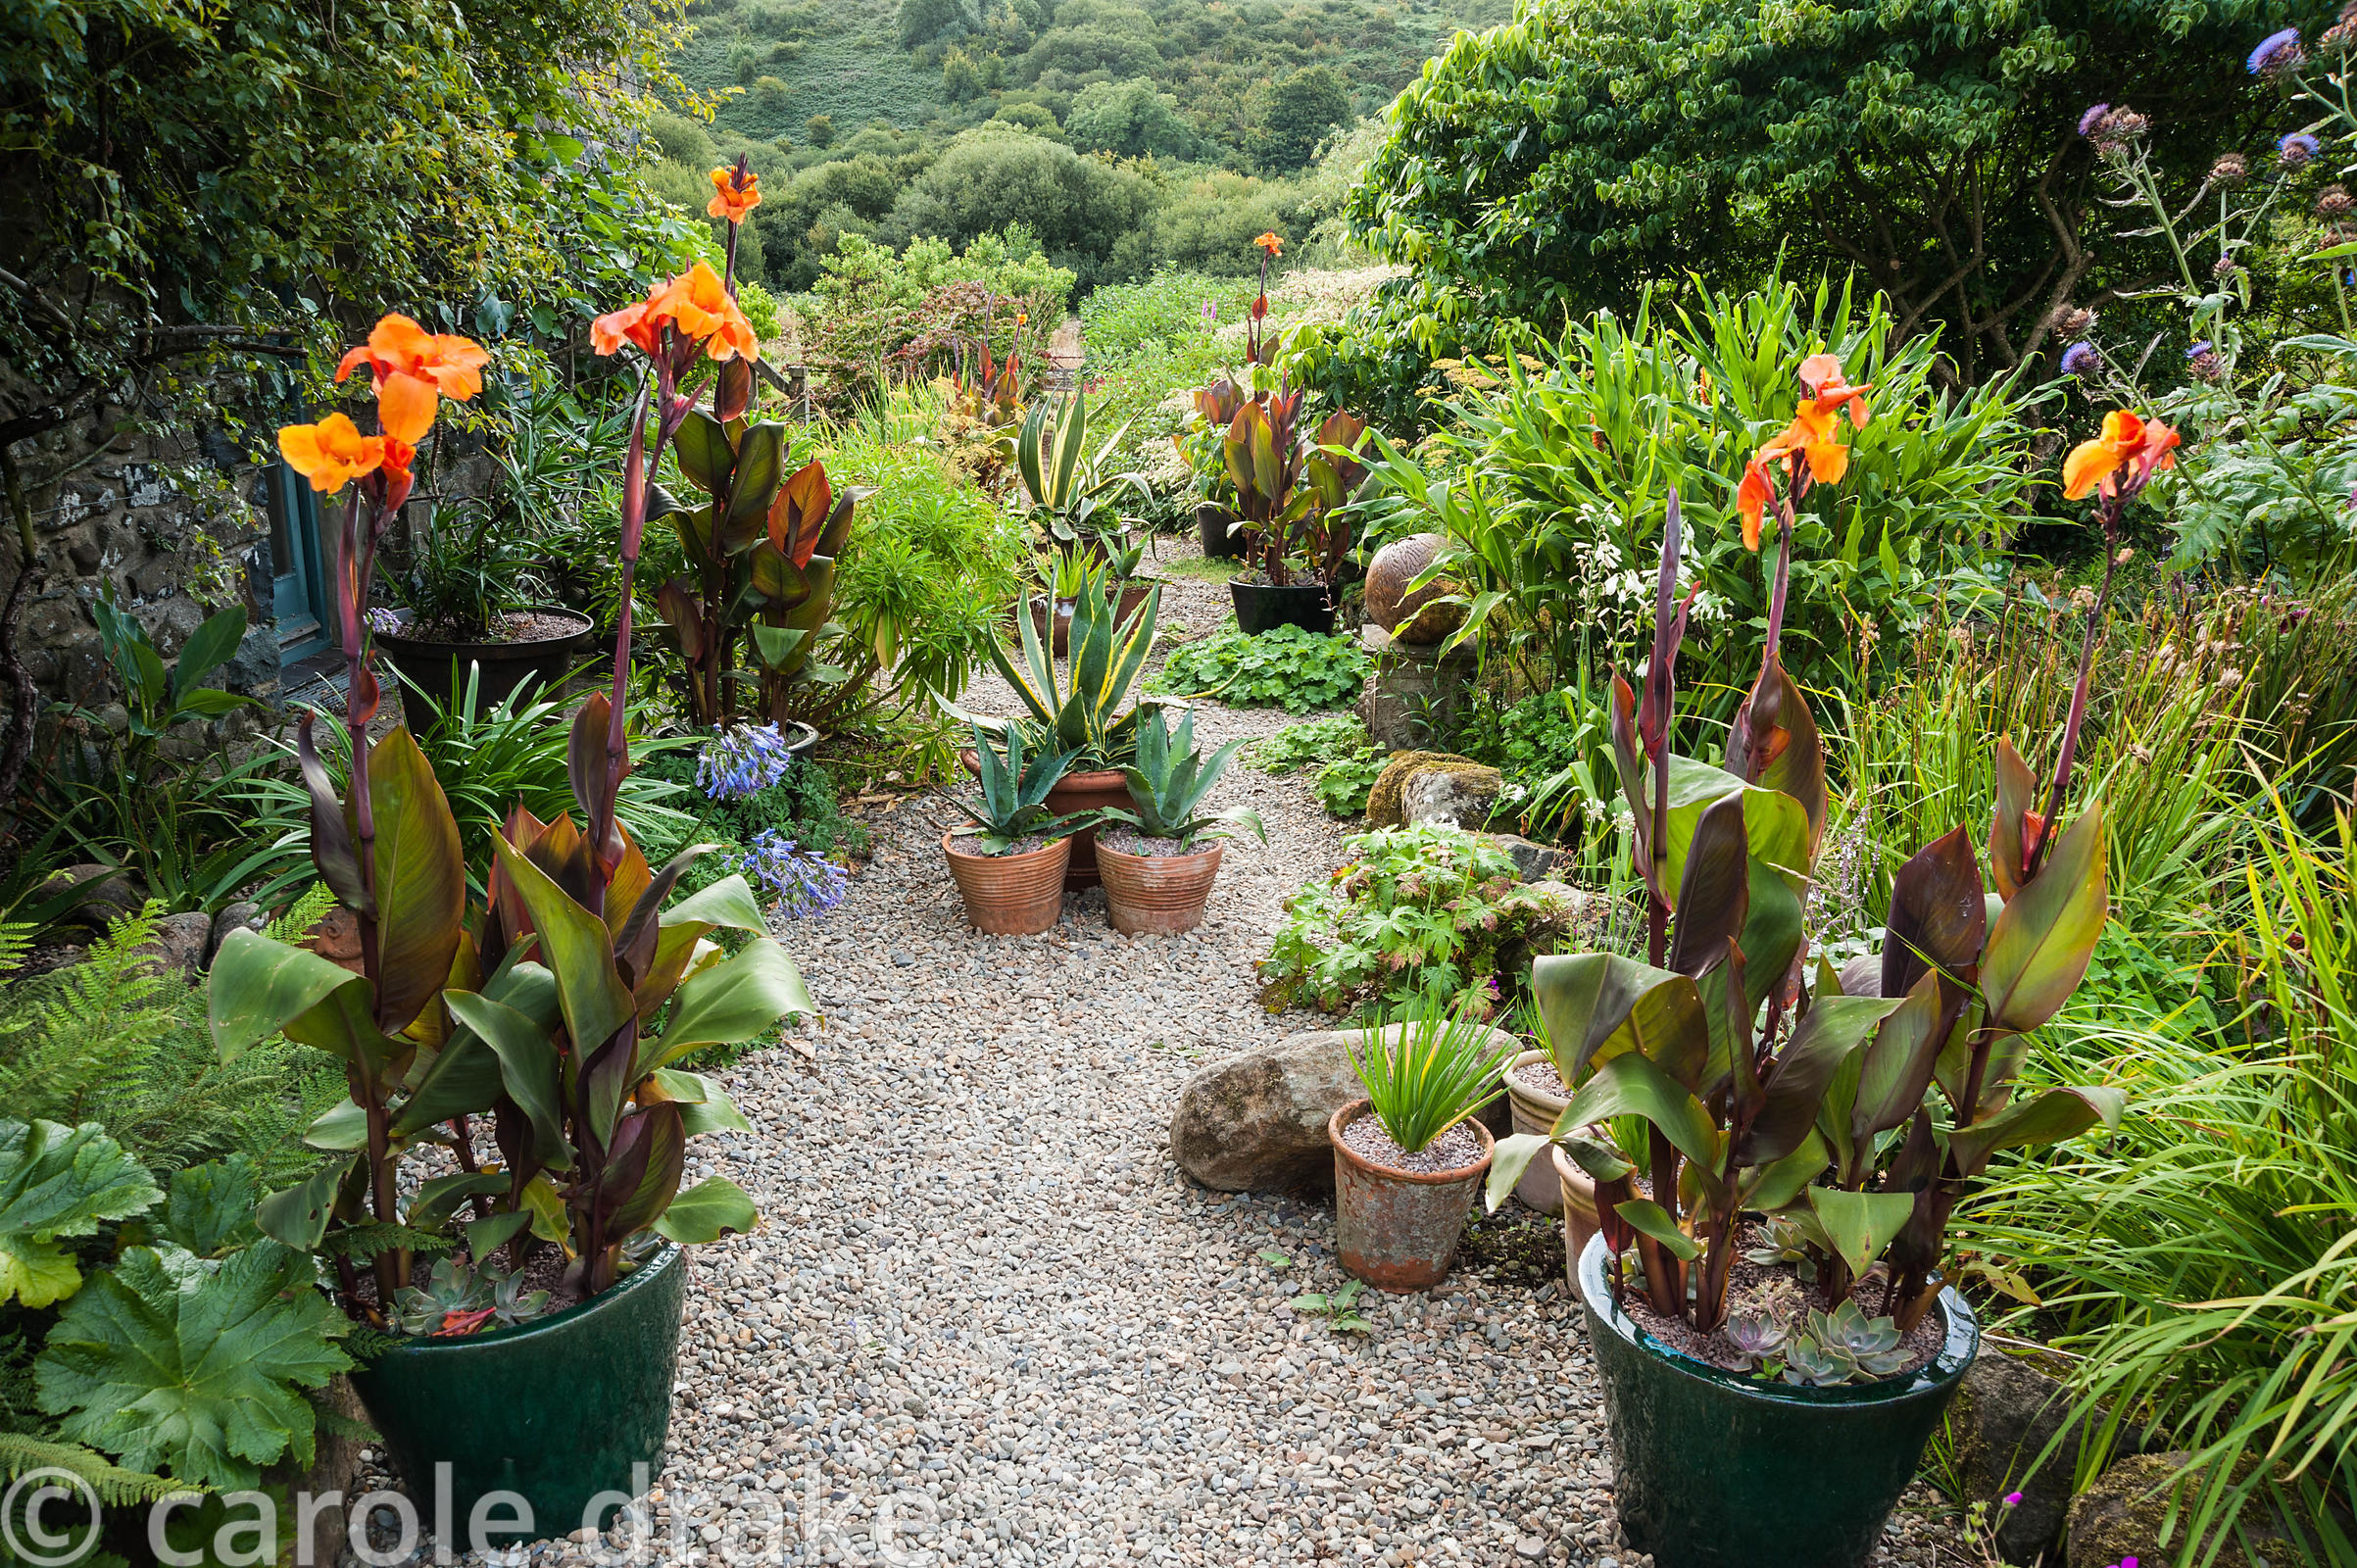 The Courtyard garden features many pots planted with a variety of succulents, orange cannas and other plants surrounded by se...